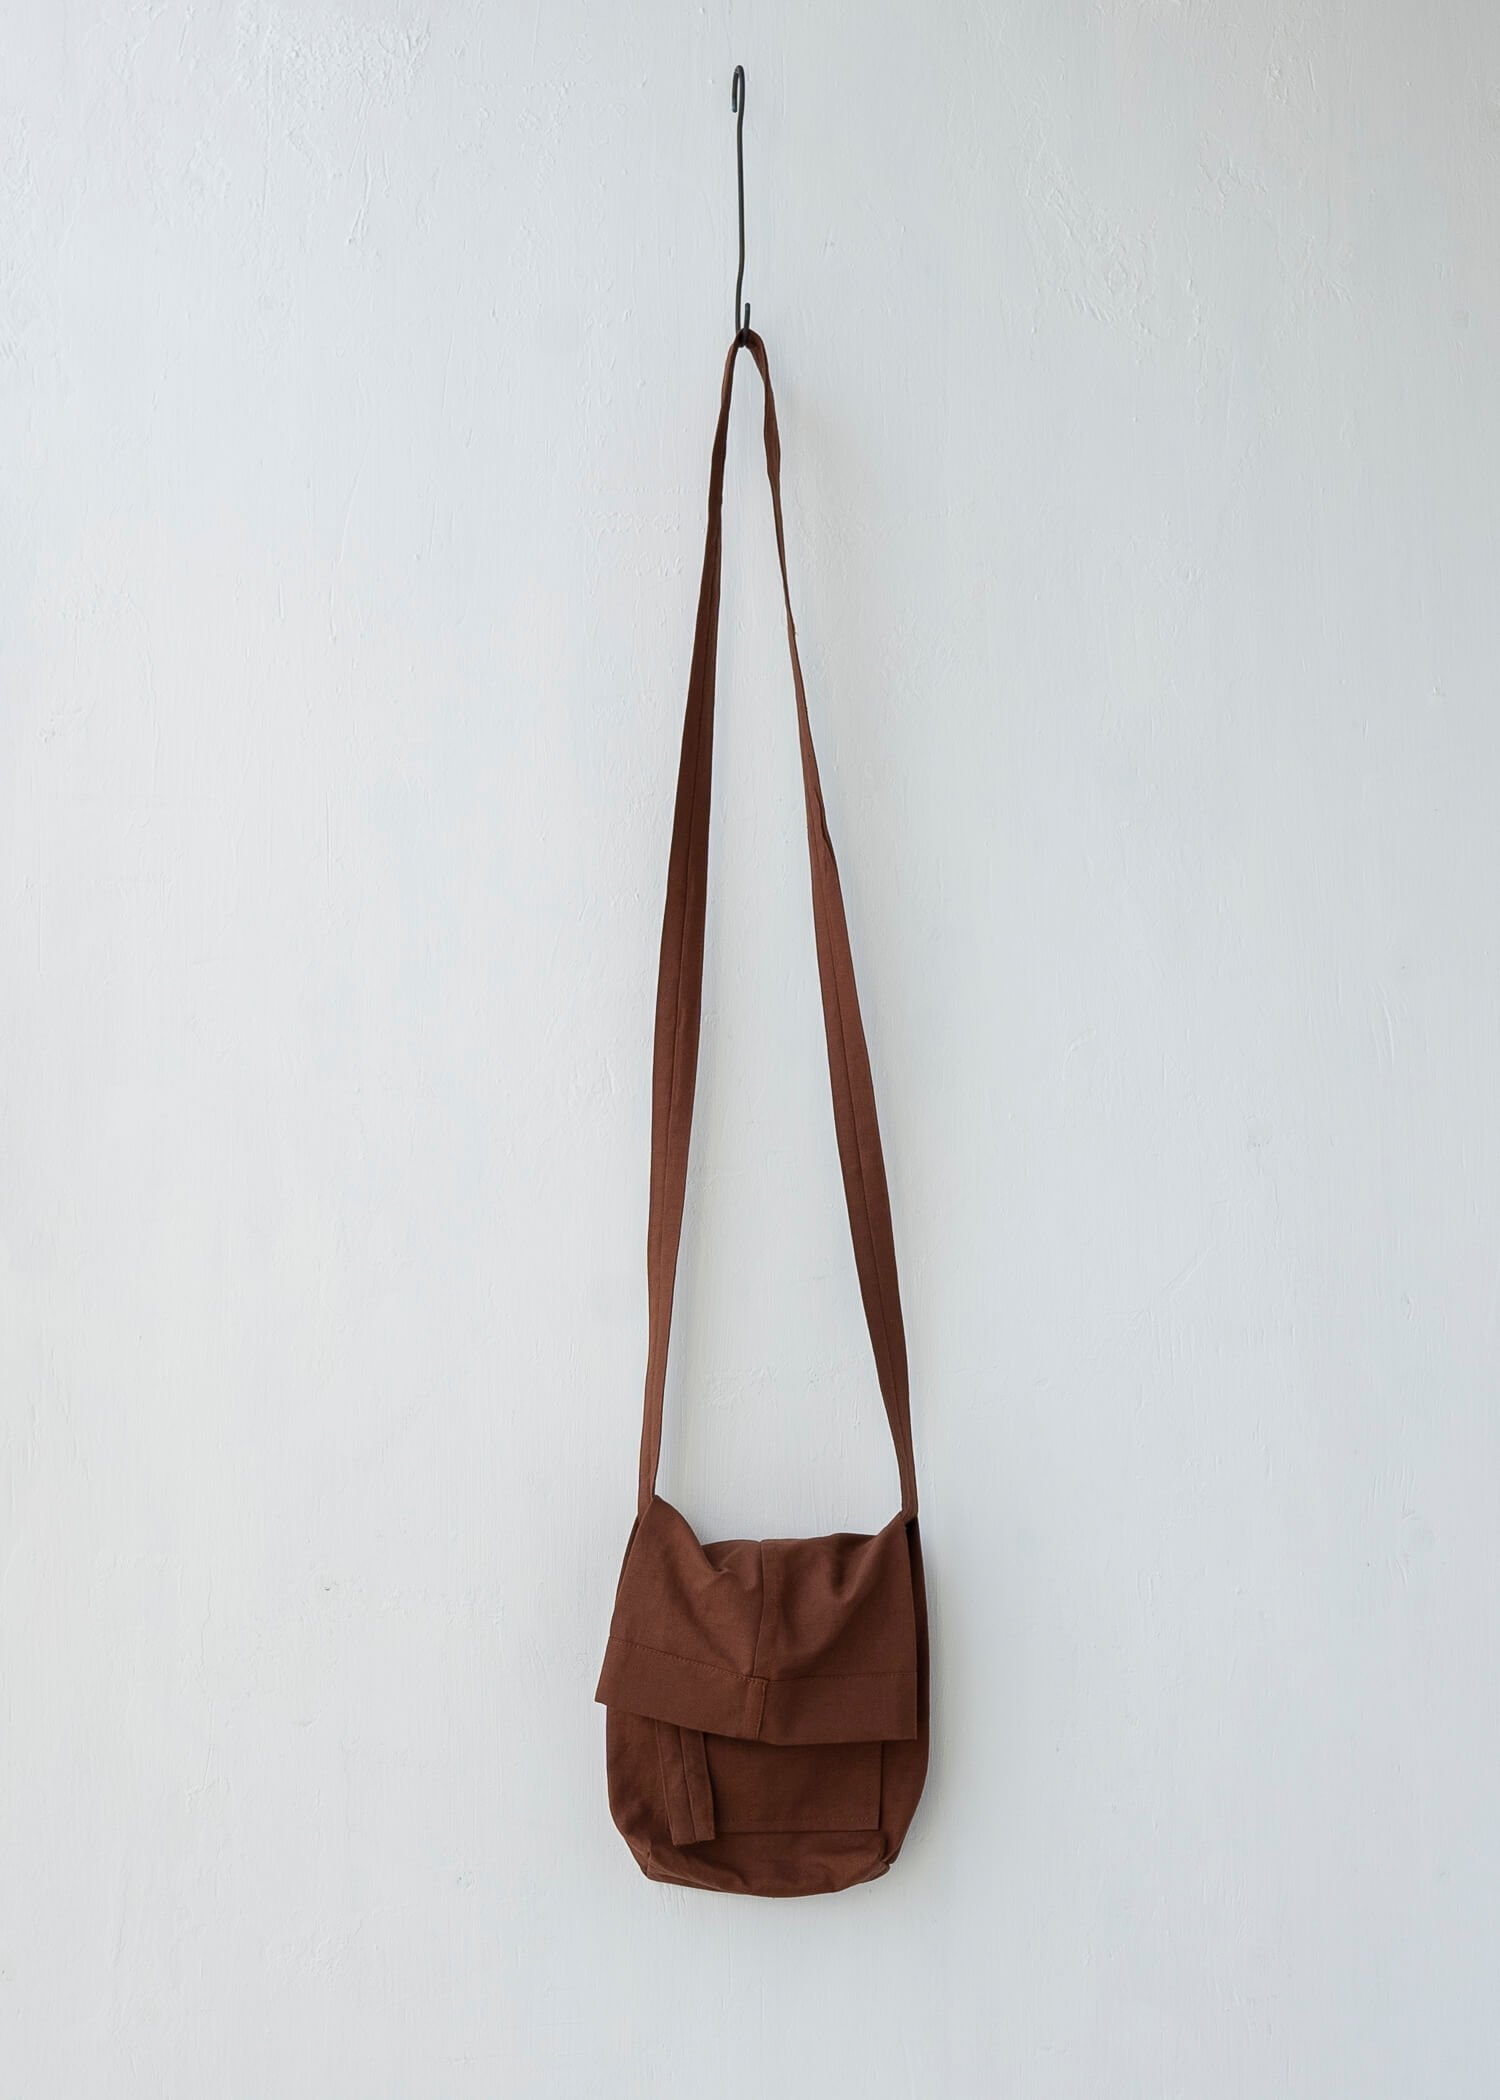 JAN-JAN VAN ESSCHE / BAG#15 SMALL BAG RUST DENSE TWILL